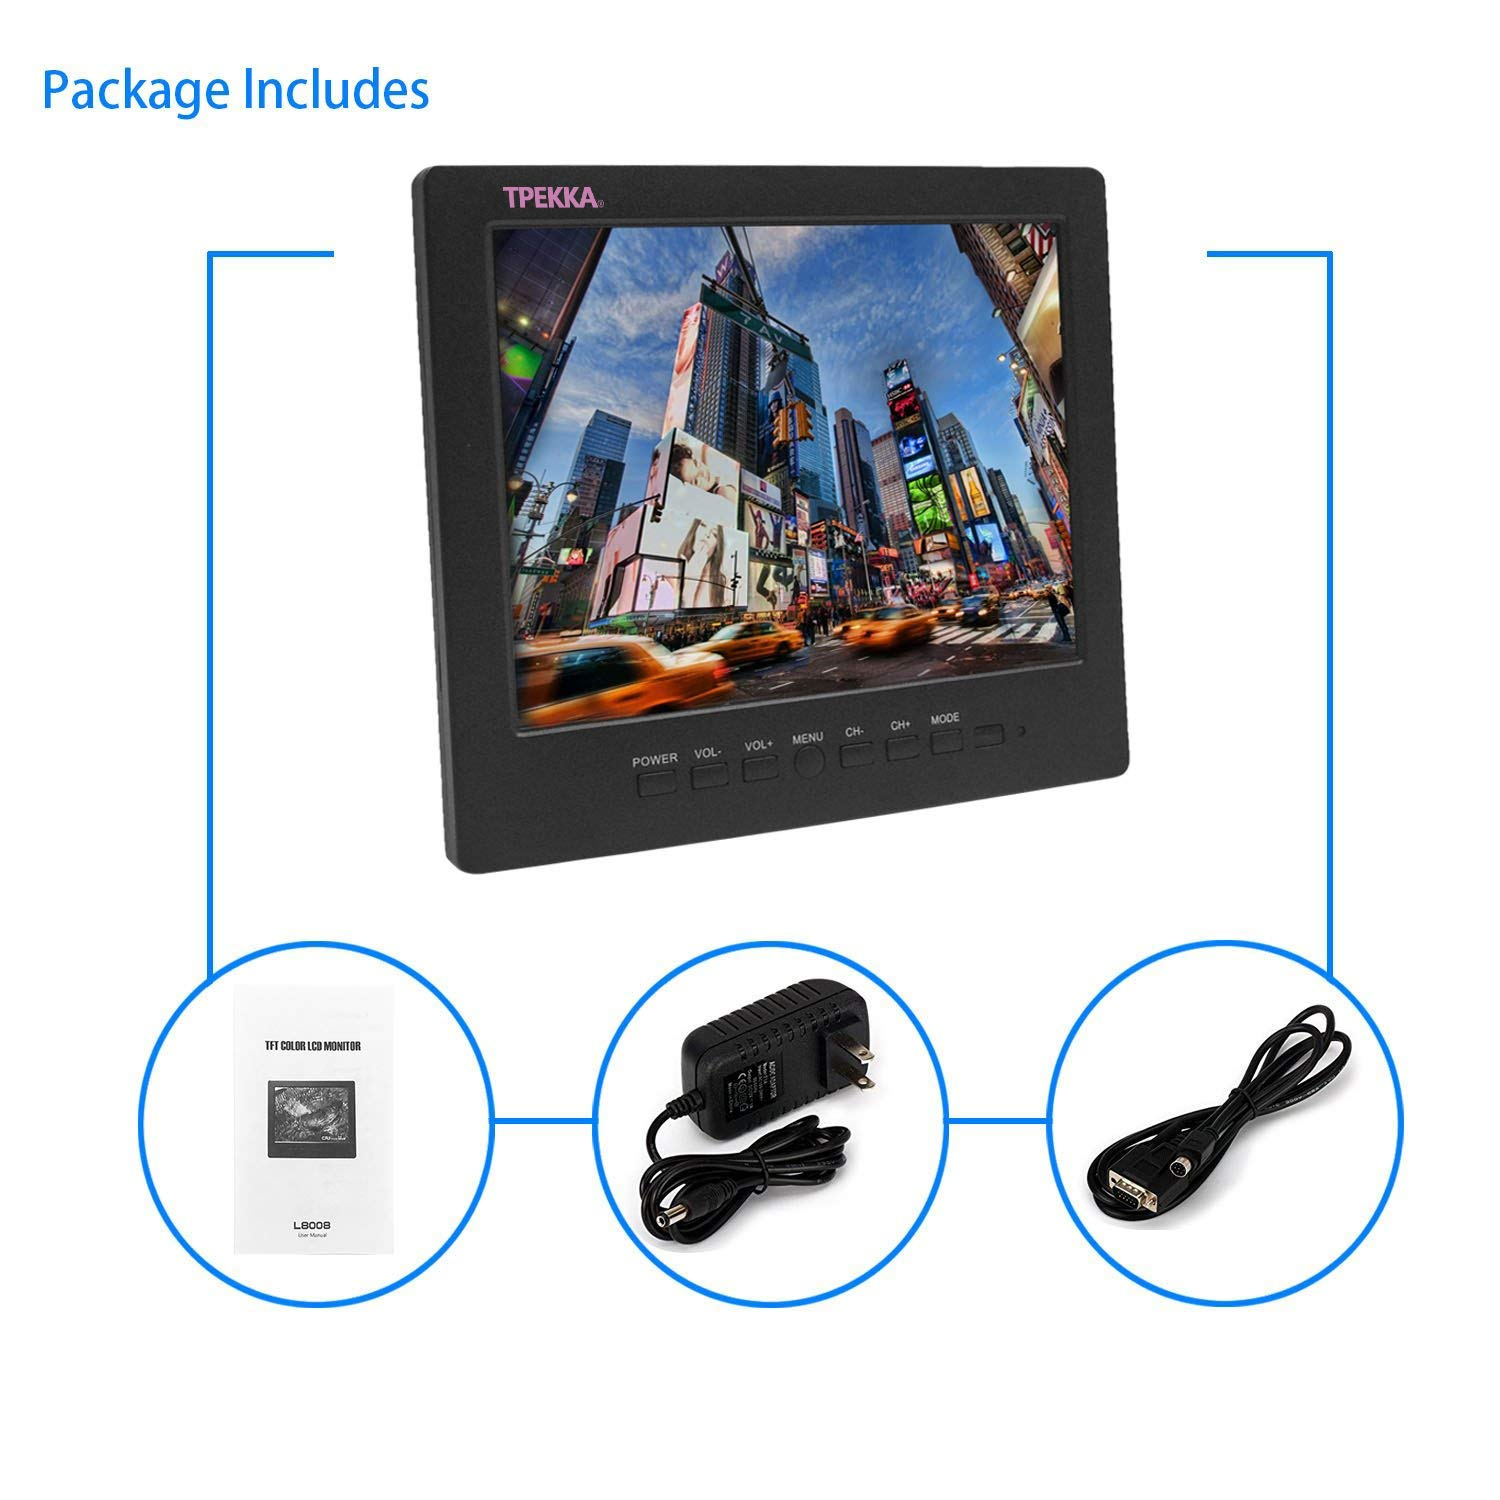 8'' Inch 4:3 Portable Monitor TFT LCD Car Monitor VGA BNC RCA Input TPEKKA 800x600 Monitor Screen for PC Display CCTV Security Cam DV Bcak Up Cam System FPV by TPEKKA (Image #6)